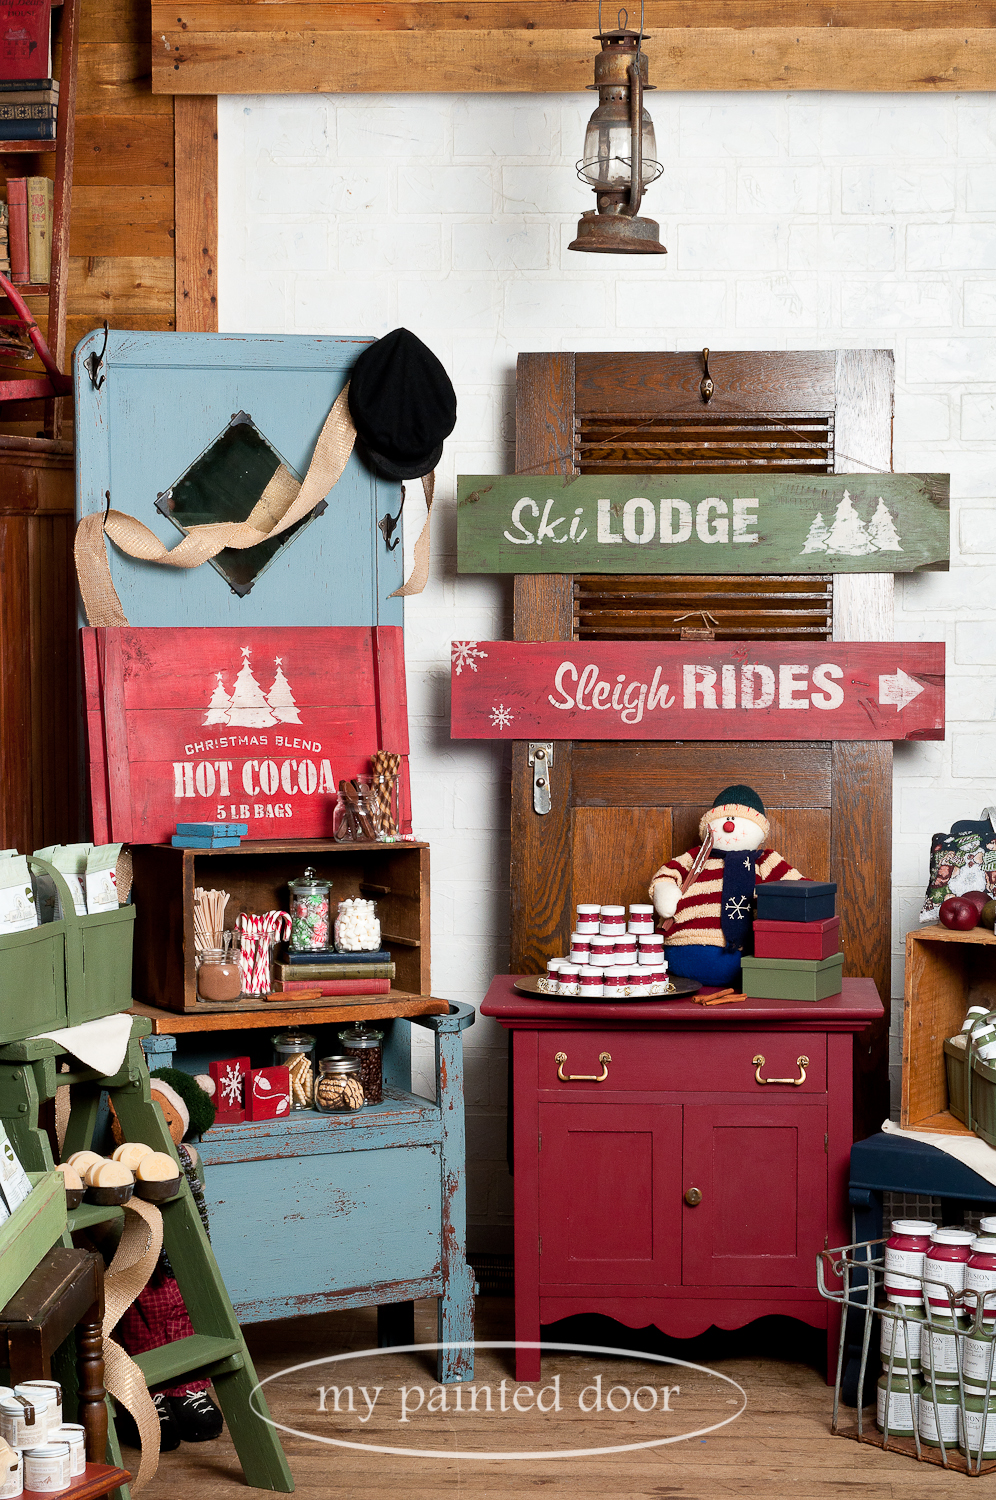 My Painted Door is offering Christmas Sign Workshops using Miss Mustard Seed's Milk Paint. Our workshops will teach you tons of tips and techniques on how to take new wood and create an authentic looking vintage sign by distressing, layering colours and more.